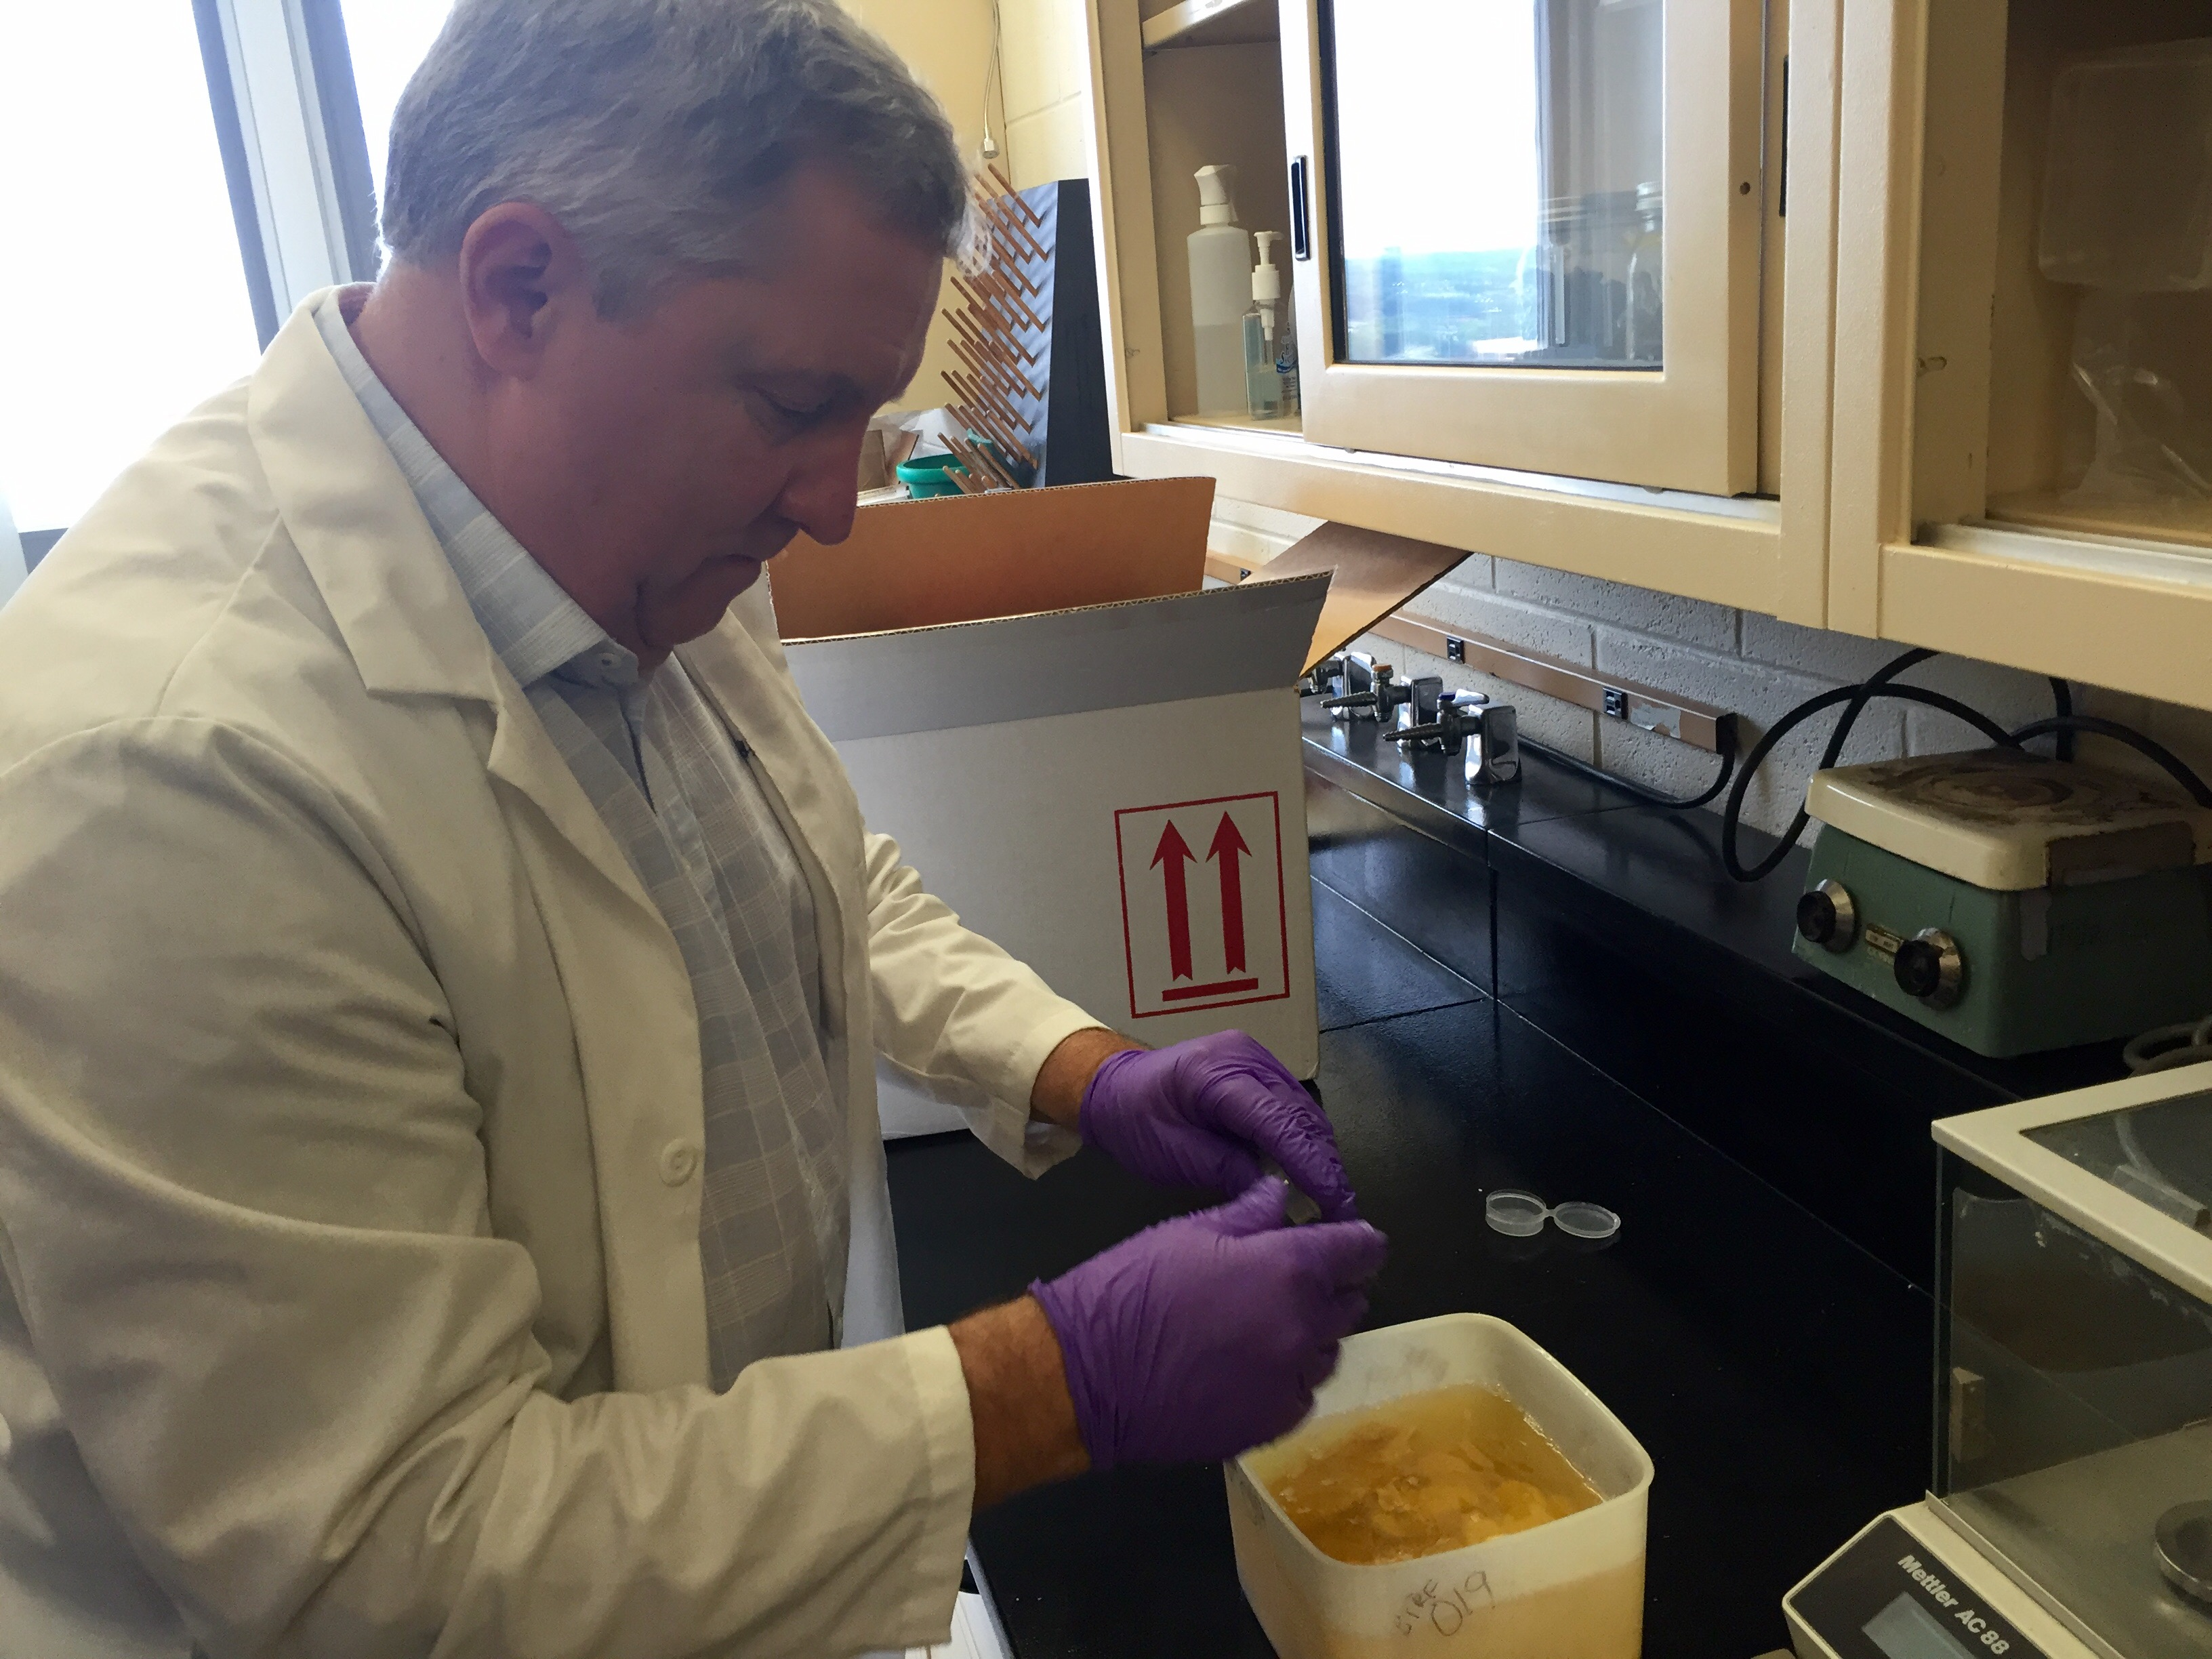 Severn Churn, Ph.D. conducts ongoing research at the VCU Brain Tissue Resource Facility.